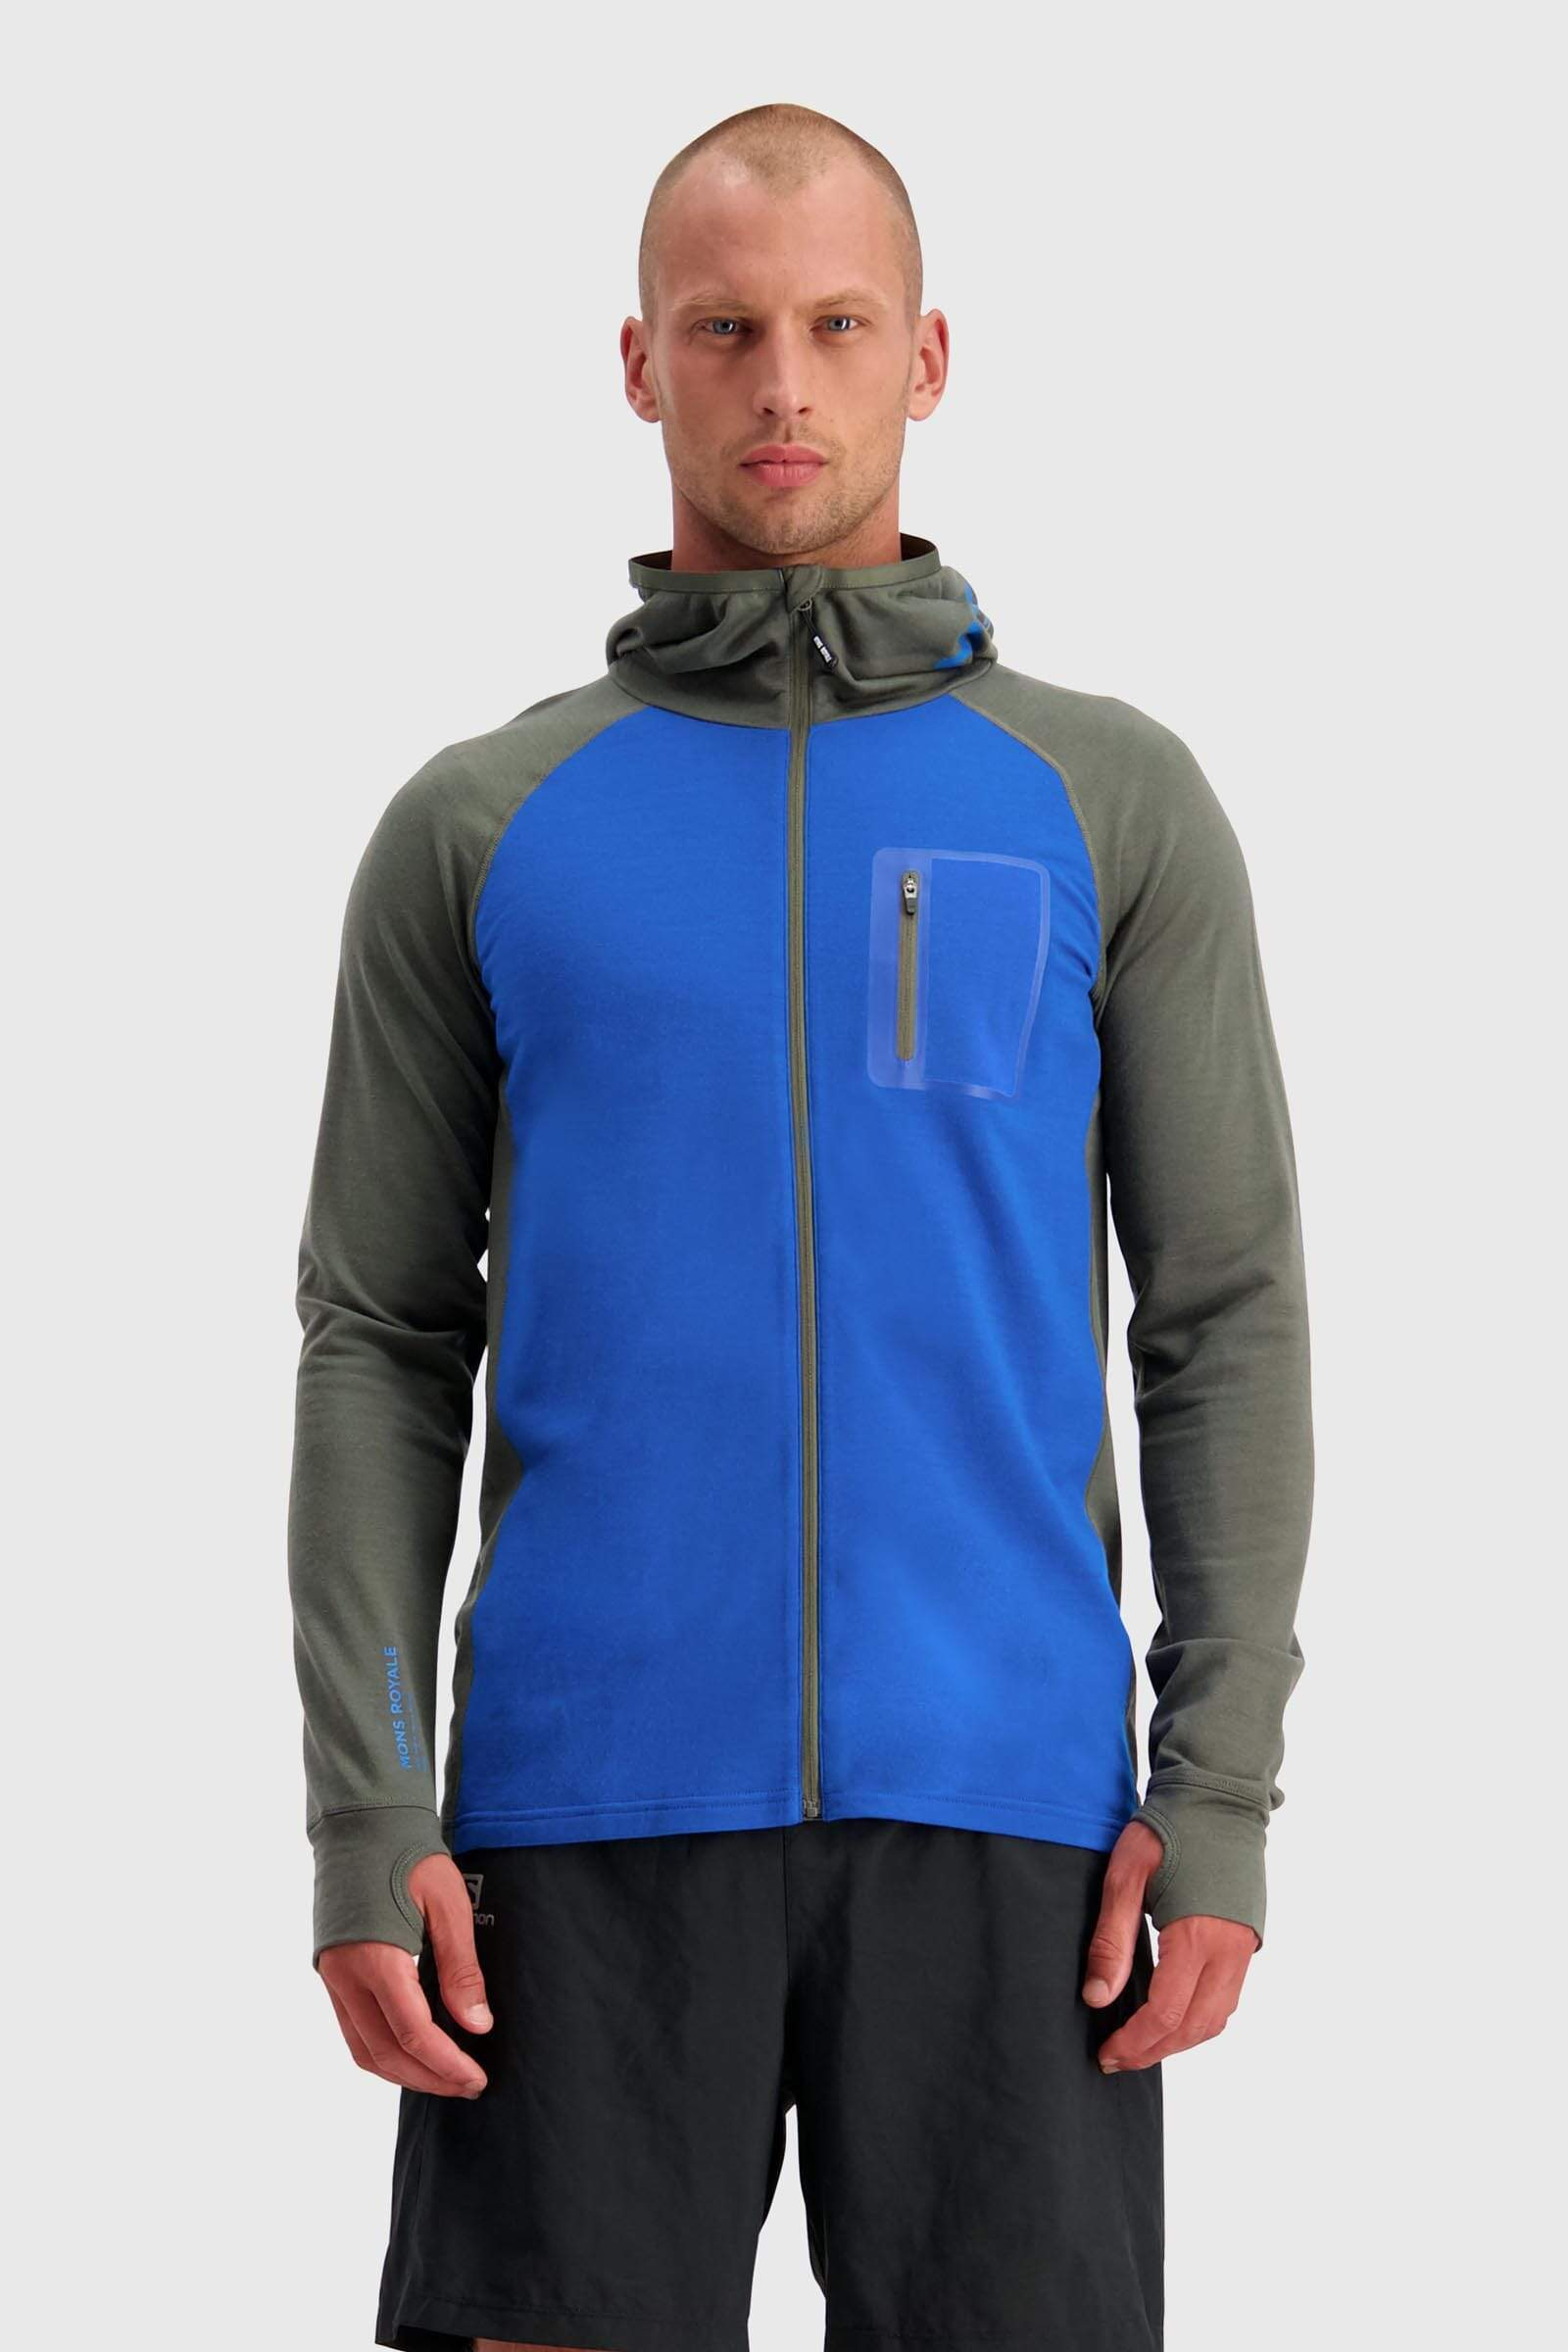 Traverse Midi Full Zip Hood - Olive / Rebel Blue